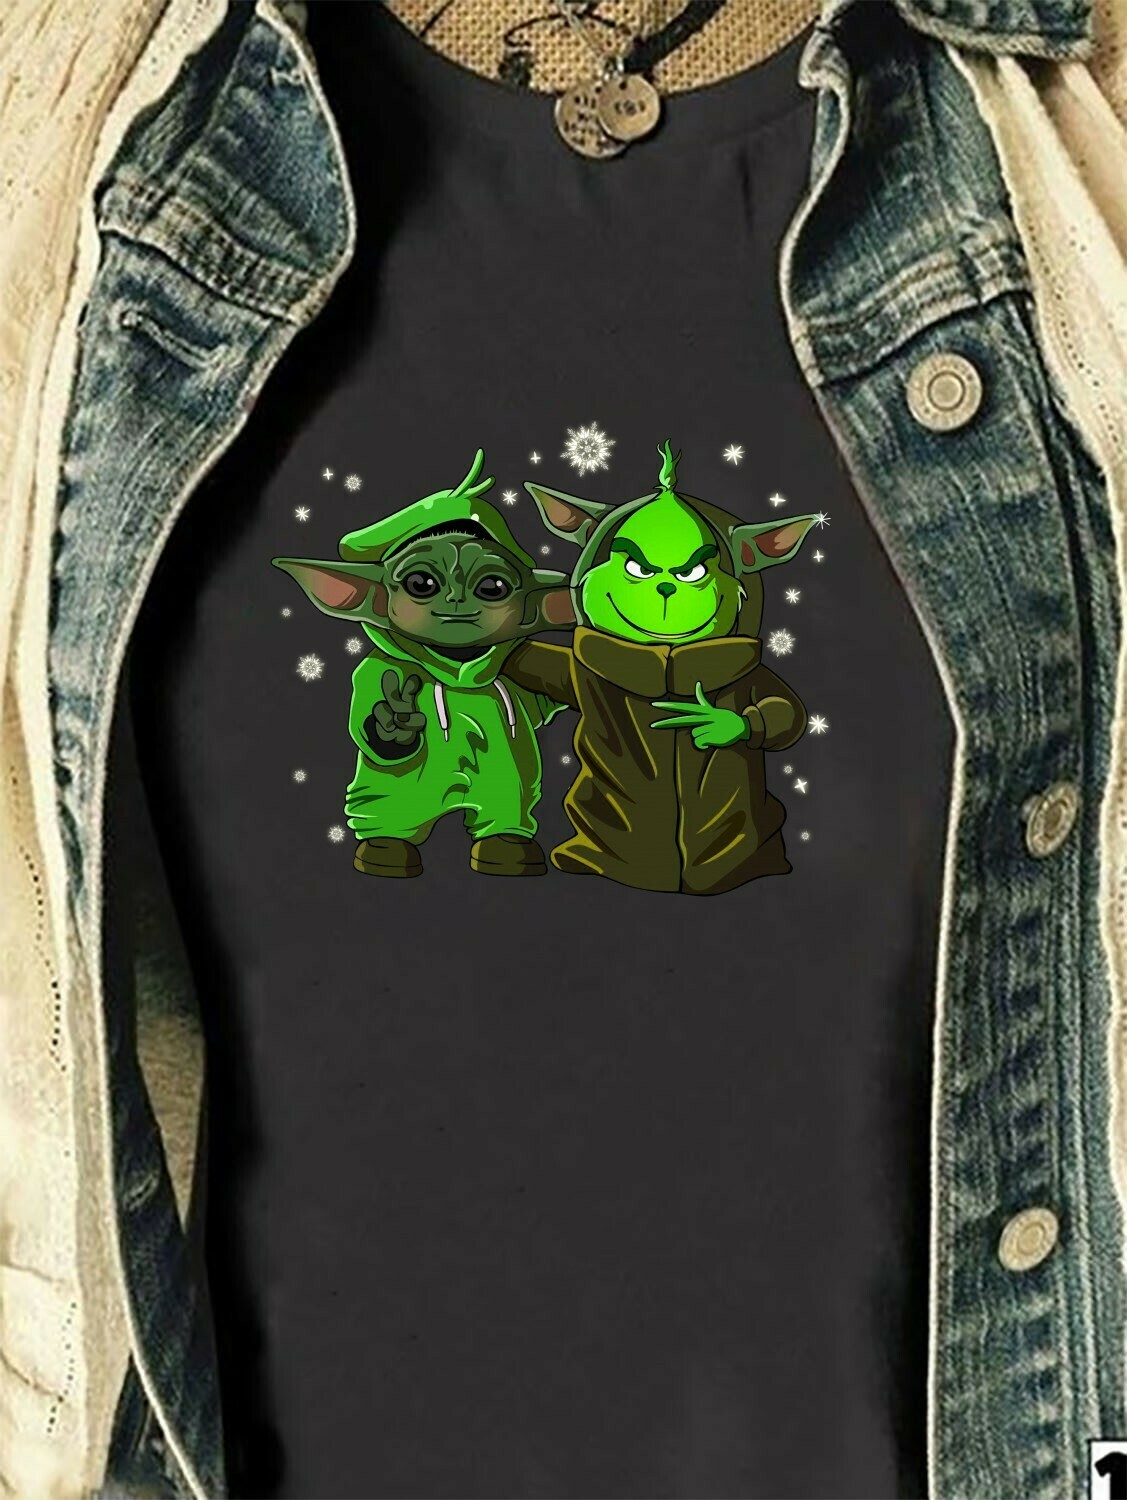 Baby Yoda Star Wars The Mandalorian The Child When Your Song Comes On,Baby Humanoid Movie Film Family Star Wars Shirts,Jedi Squad T- Shirt Long Sleeve Sweatshirt Hoodie Jolly Family Gifts